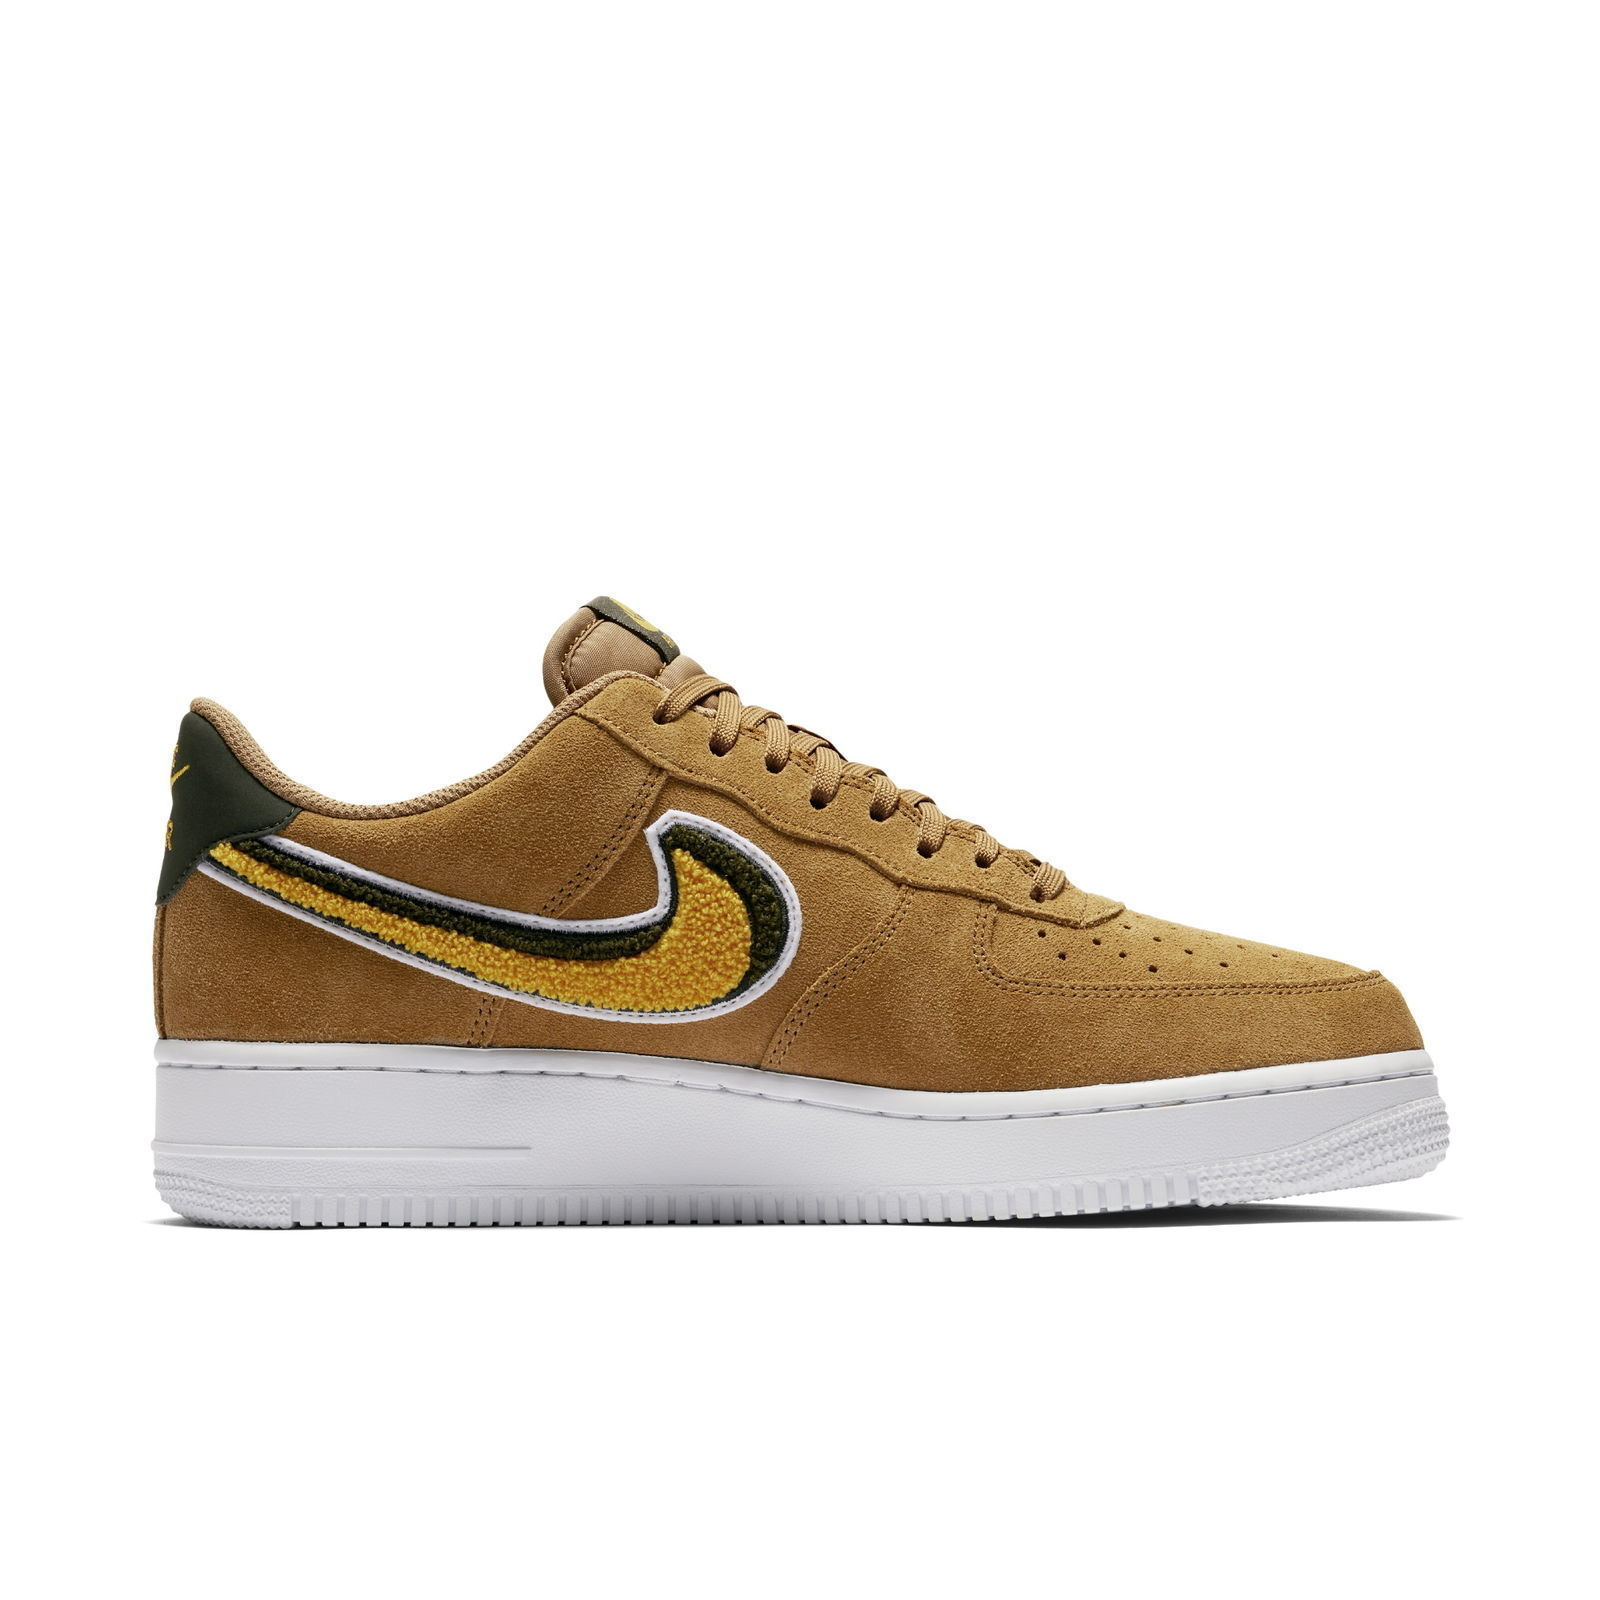 popular brand official new appearance Nike Air Force 1 '07 LV8 Suede Muted Bronze and similar items